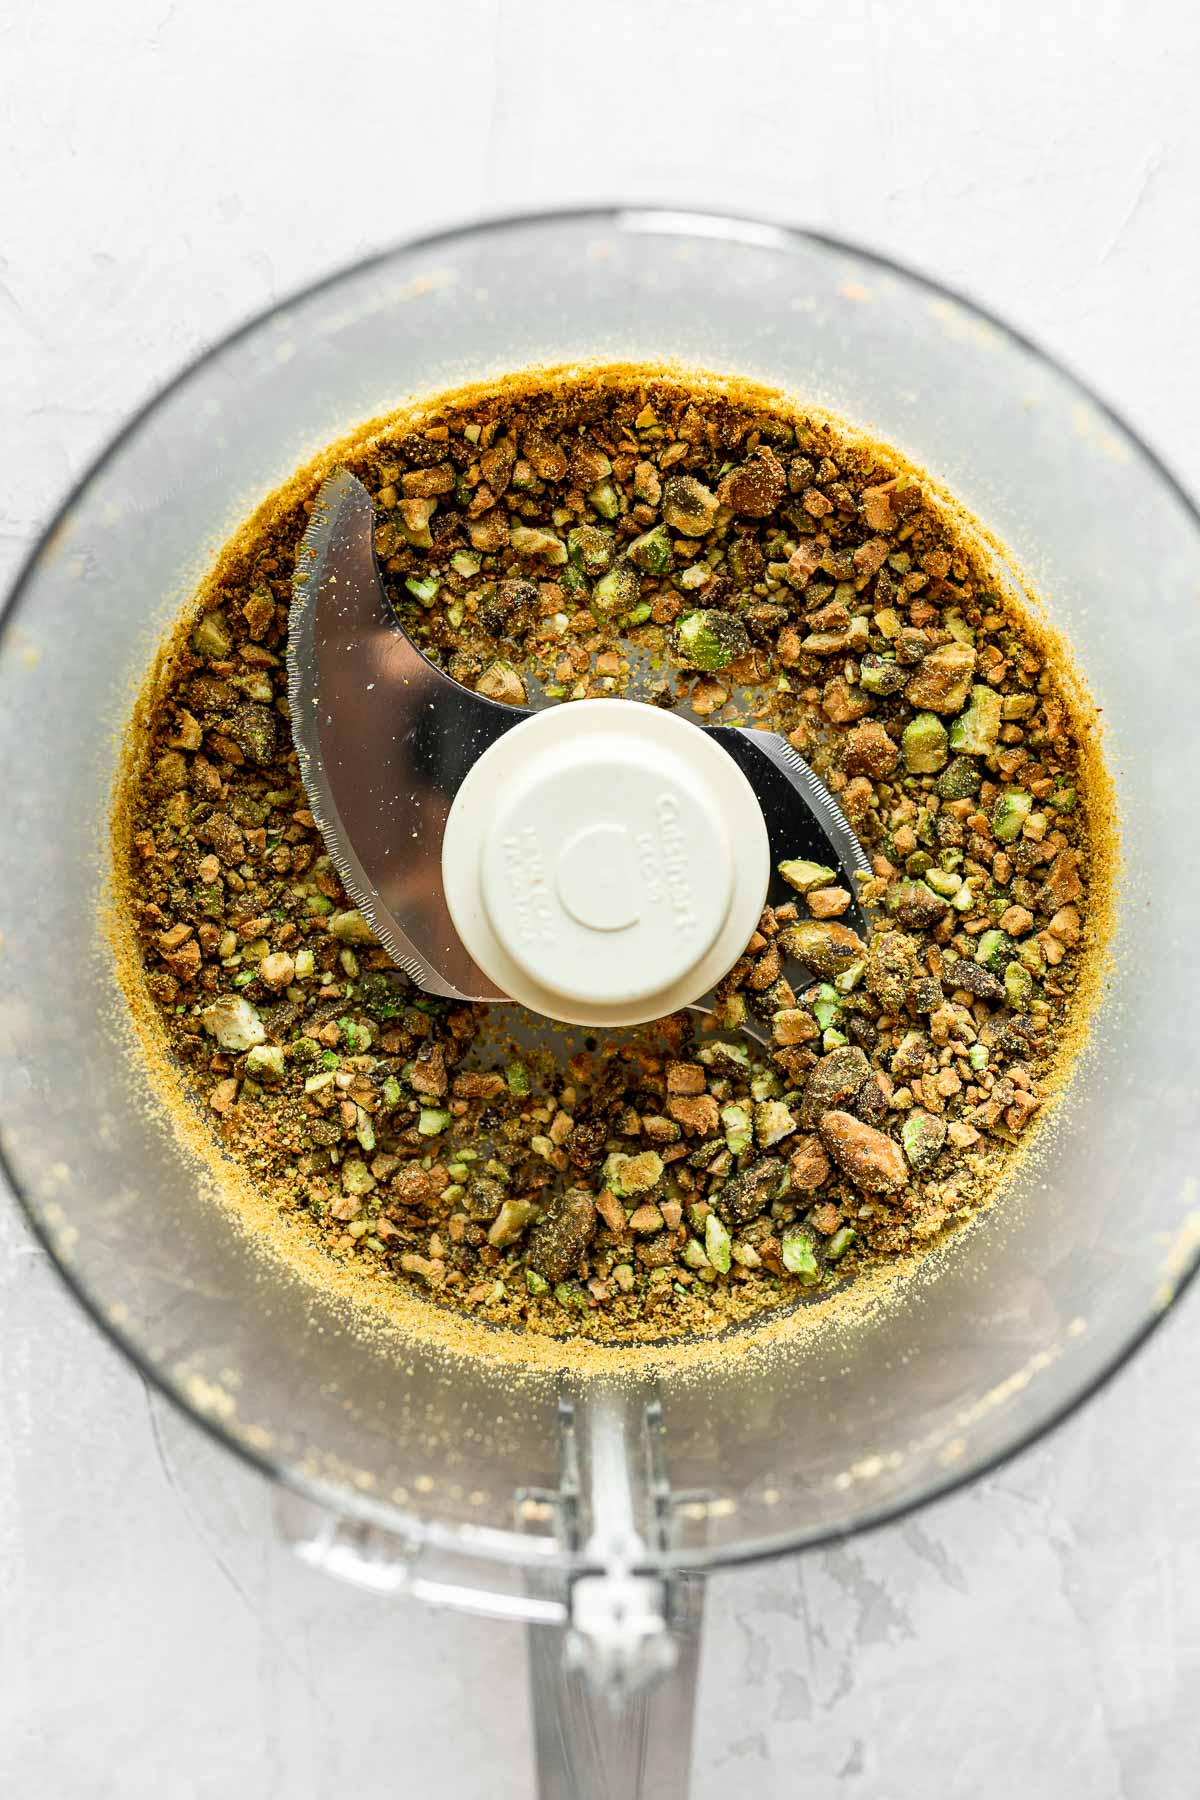 Roughly chopped pistachios & al dente cooked chickpeas combined a food processor. The food processor bowl sits on top of a white textured surface.